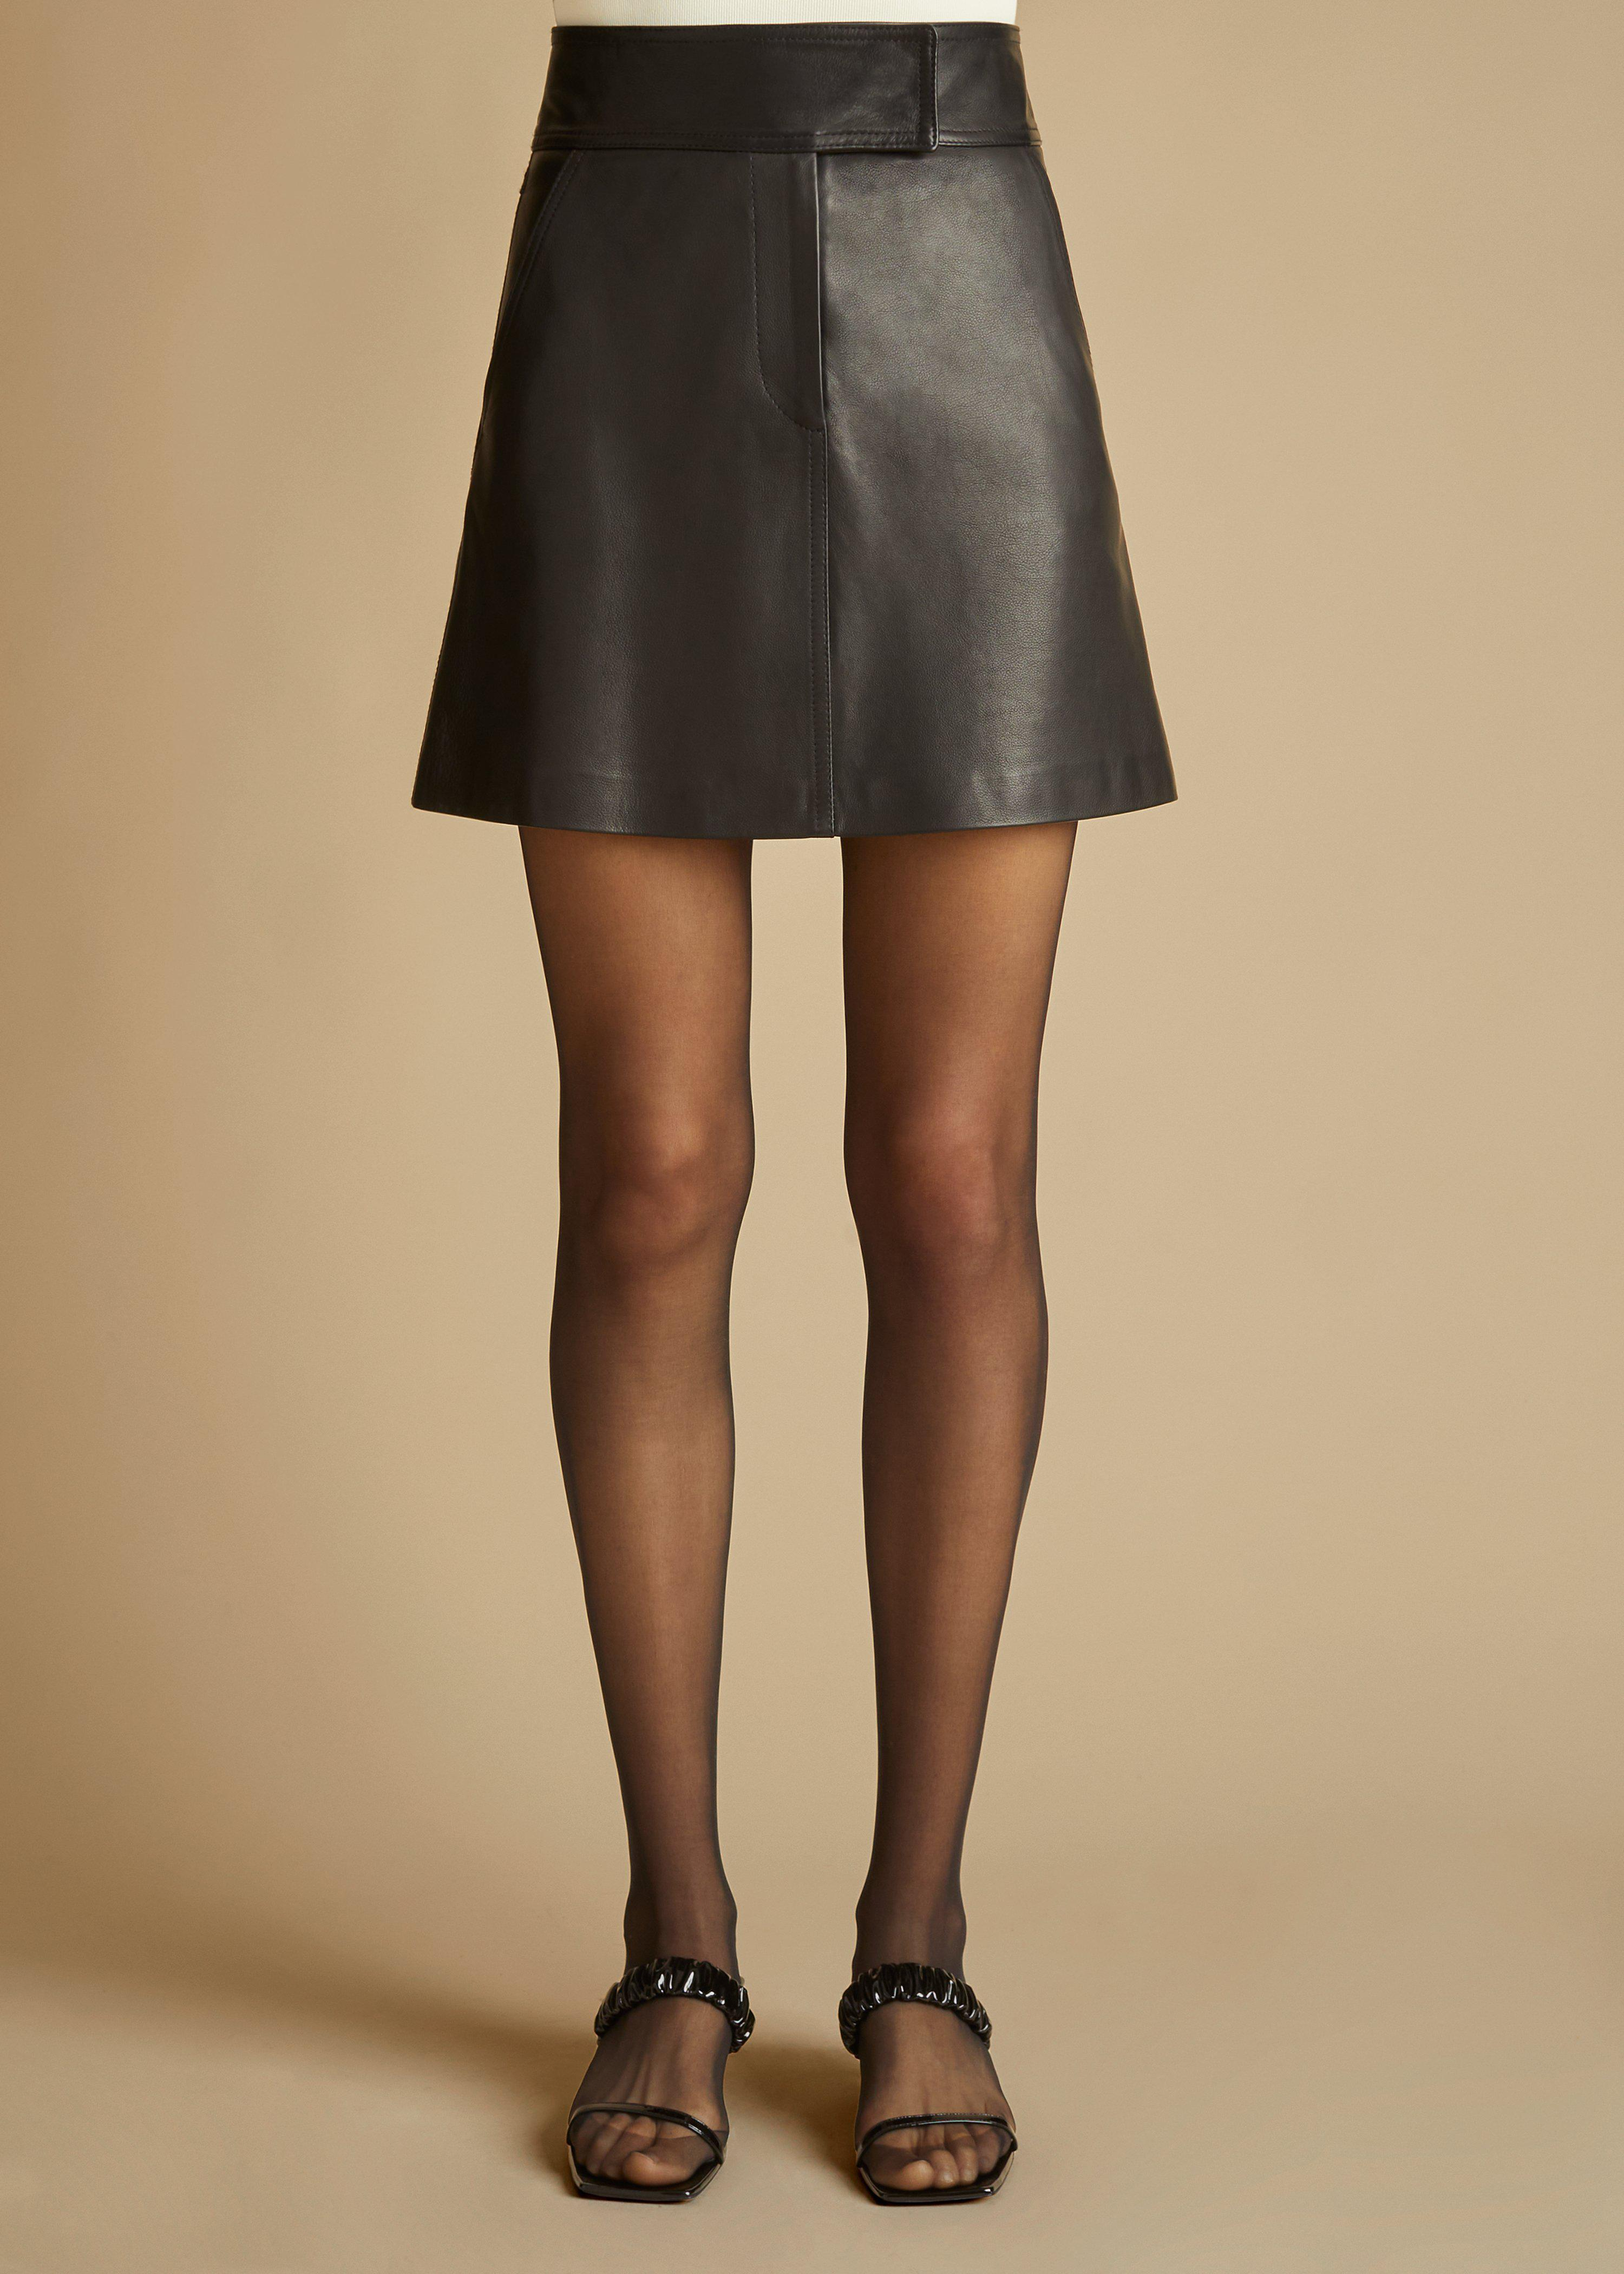 The Giulia Skirt in Black Leather 1